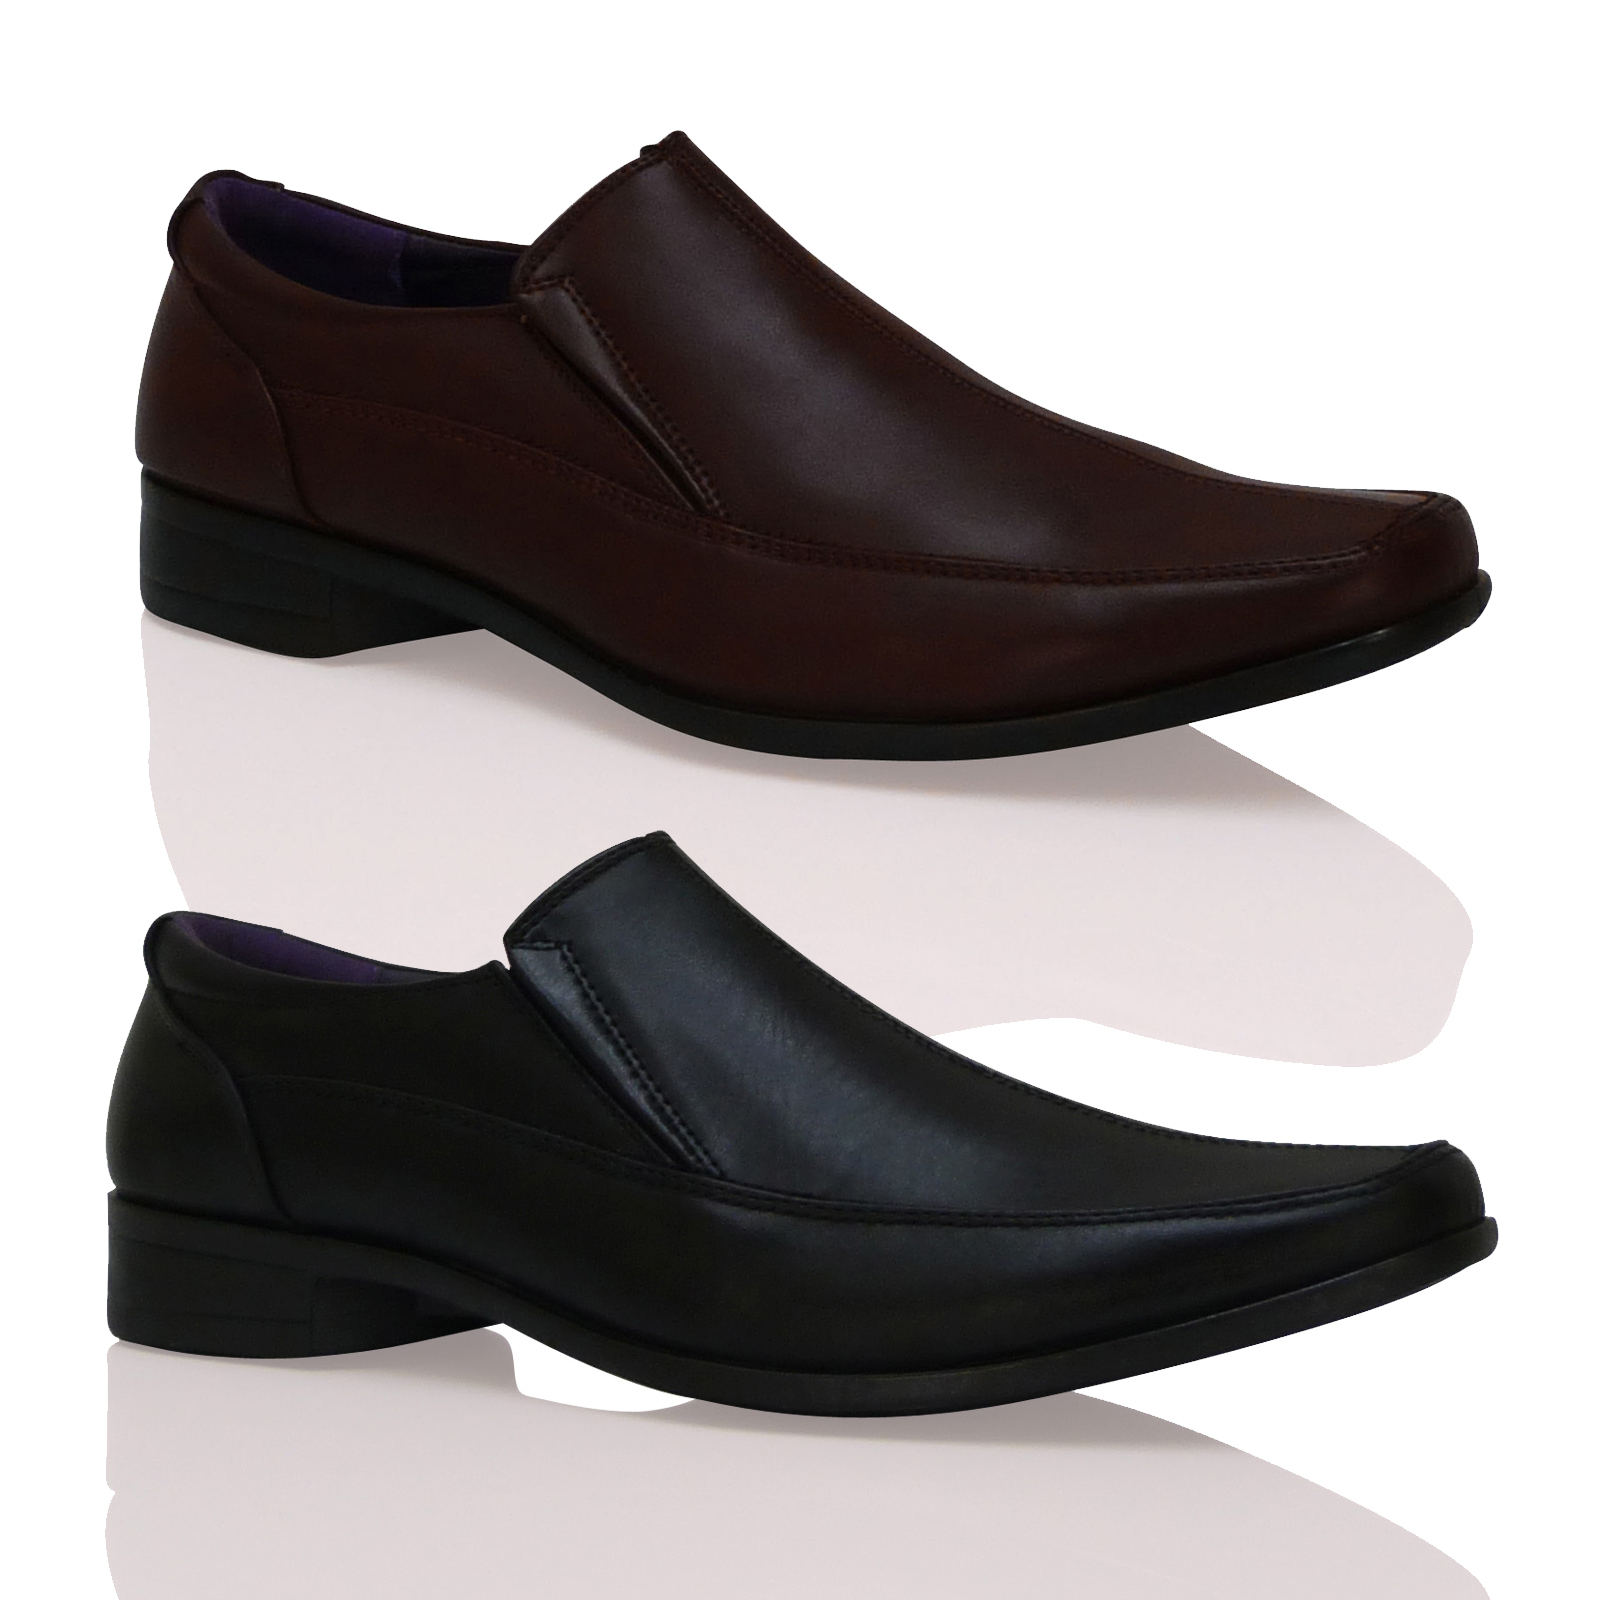 new mens stylish slip on evening comfortable smart